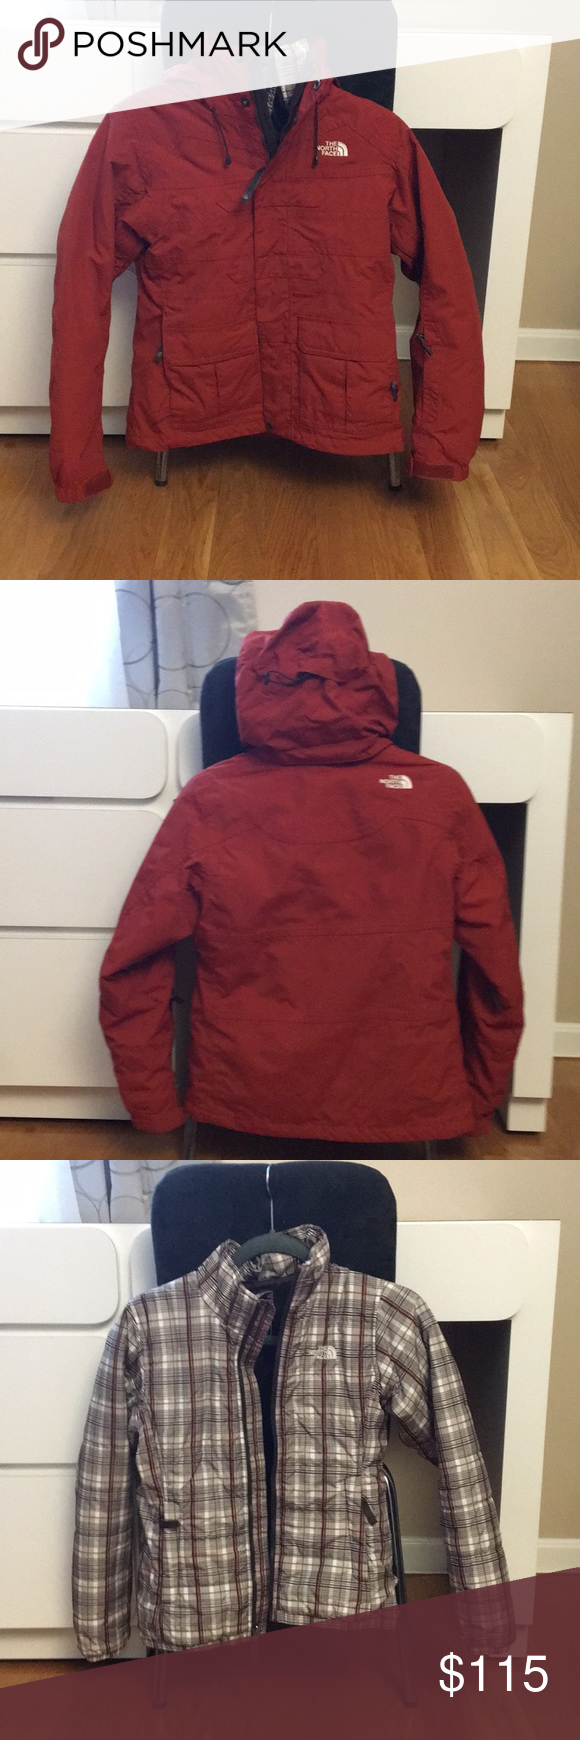 The North Face 2 In 1 Winter Jacket Clothes Design Winter Jackets Fashion [ 1740 x 580 Pixel ]